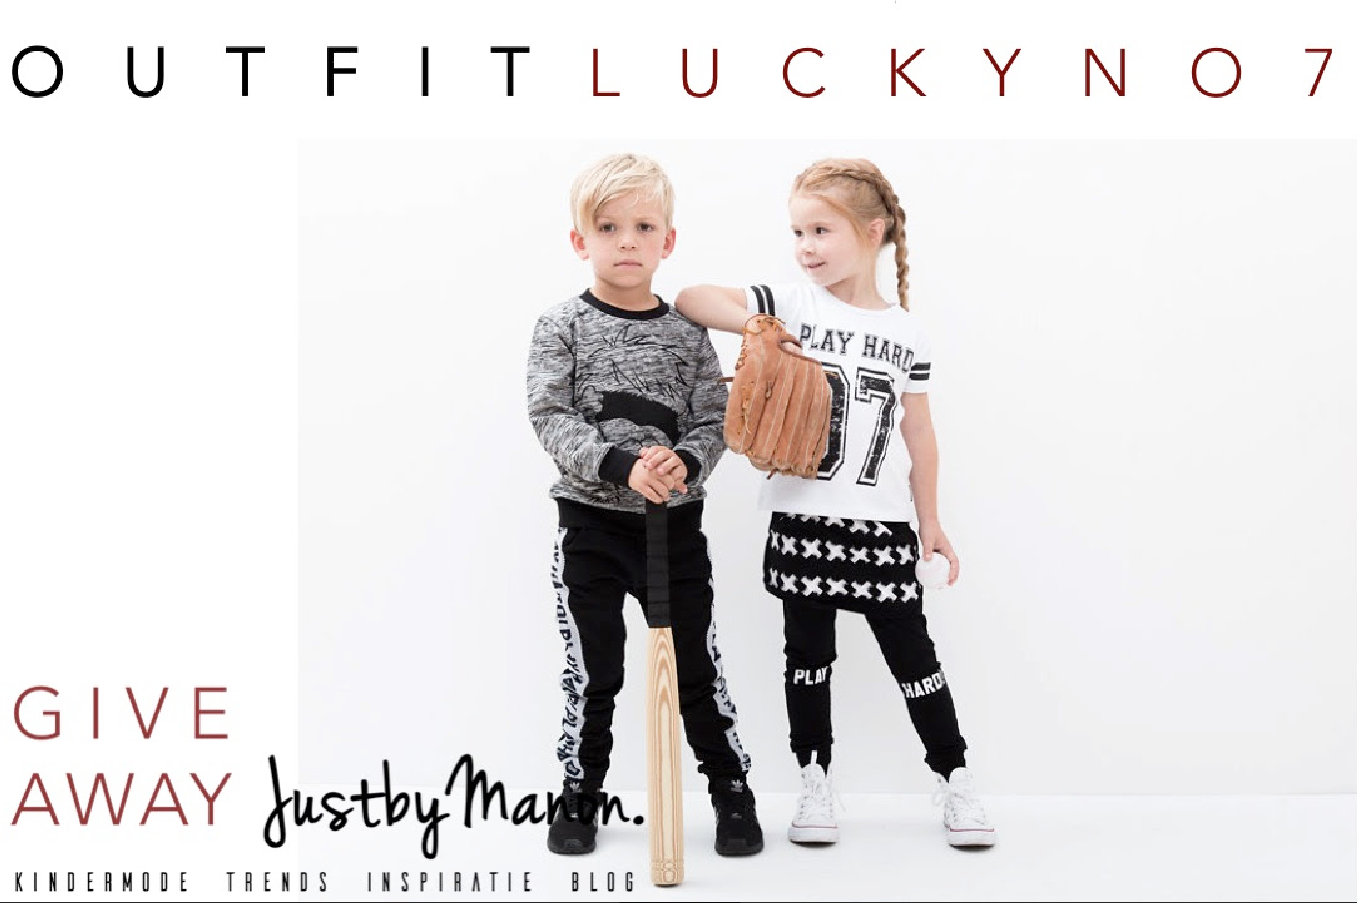 WIN Lucky no 7 outfit - Give away by JustbyManon!